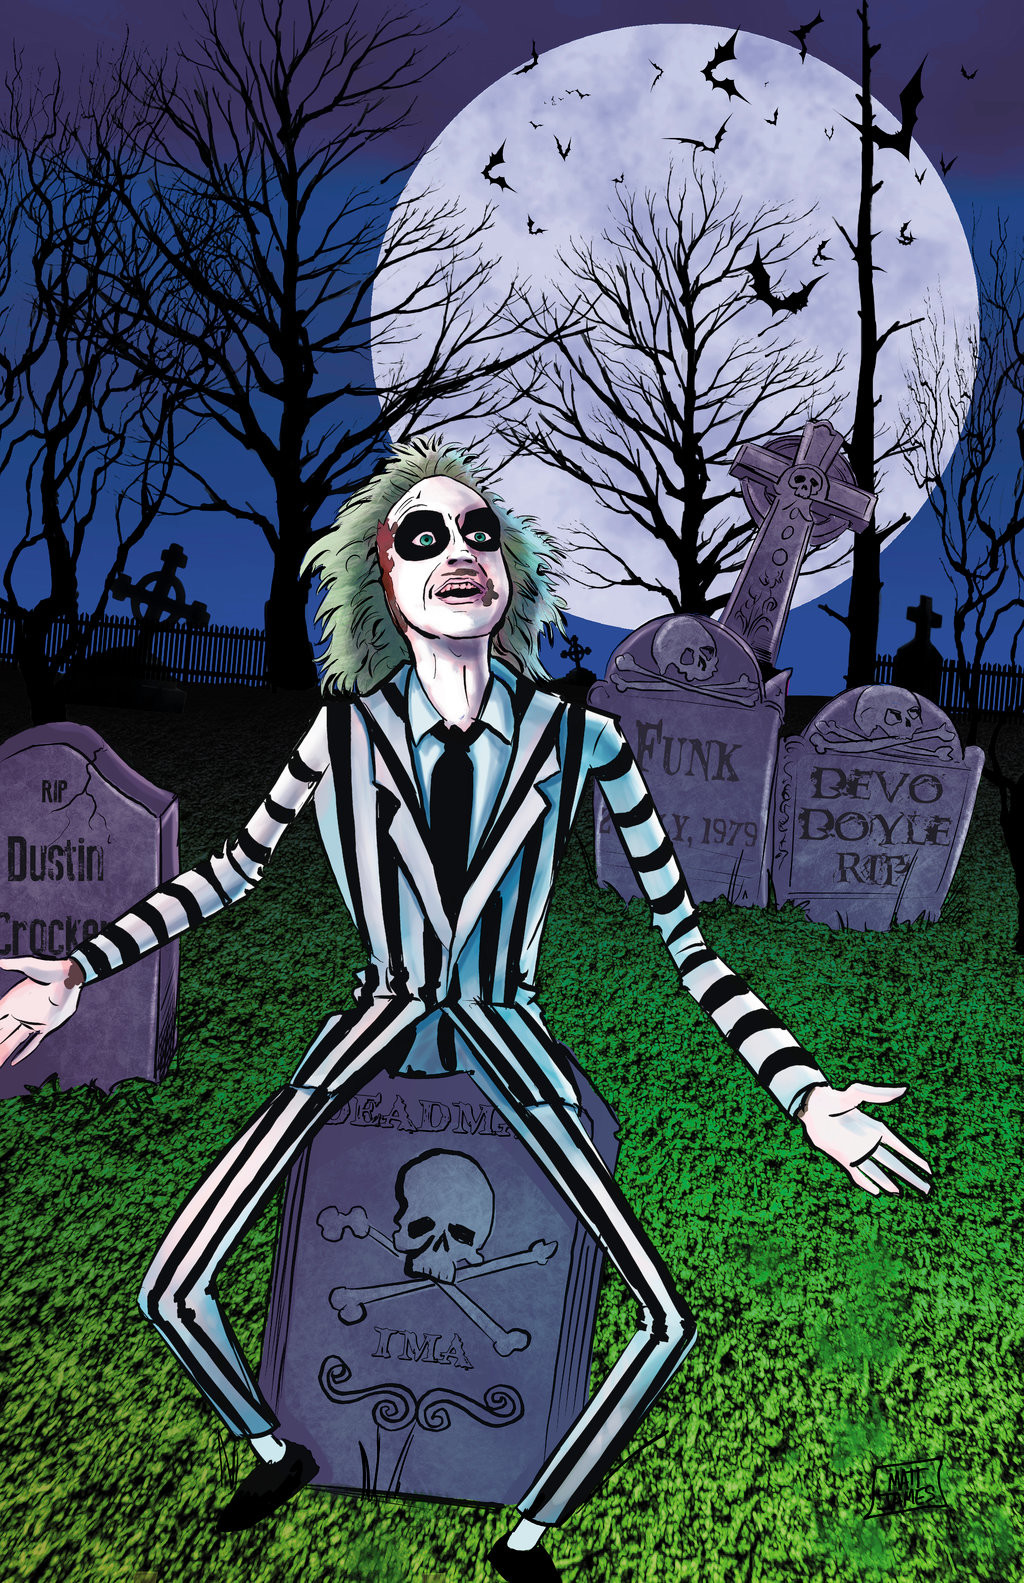 Matt james beetlejuice by mattjamescomicarts d9d8cd3